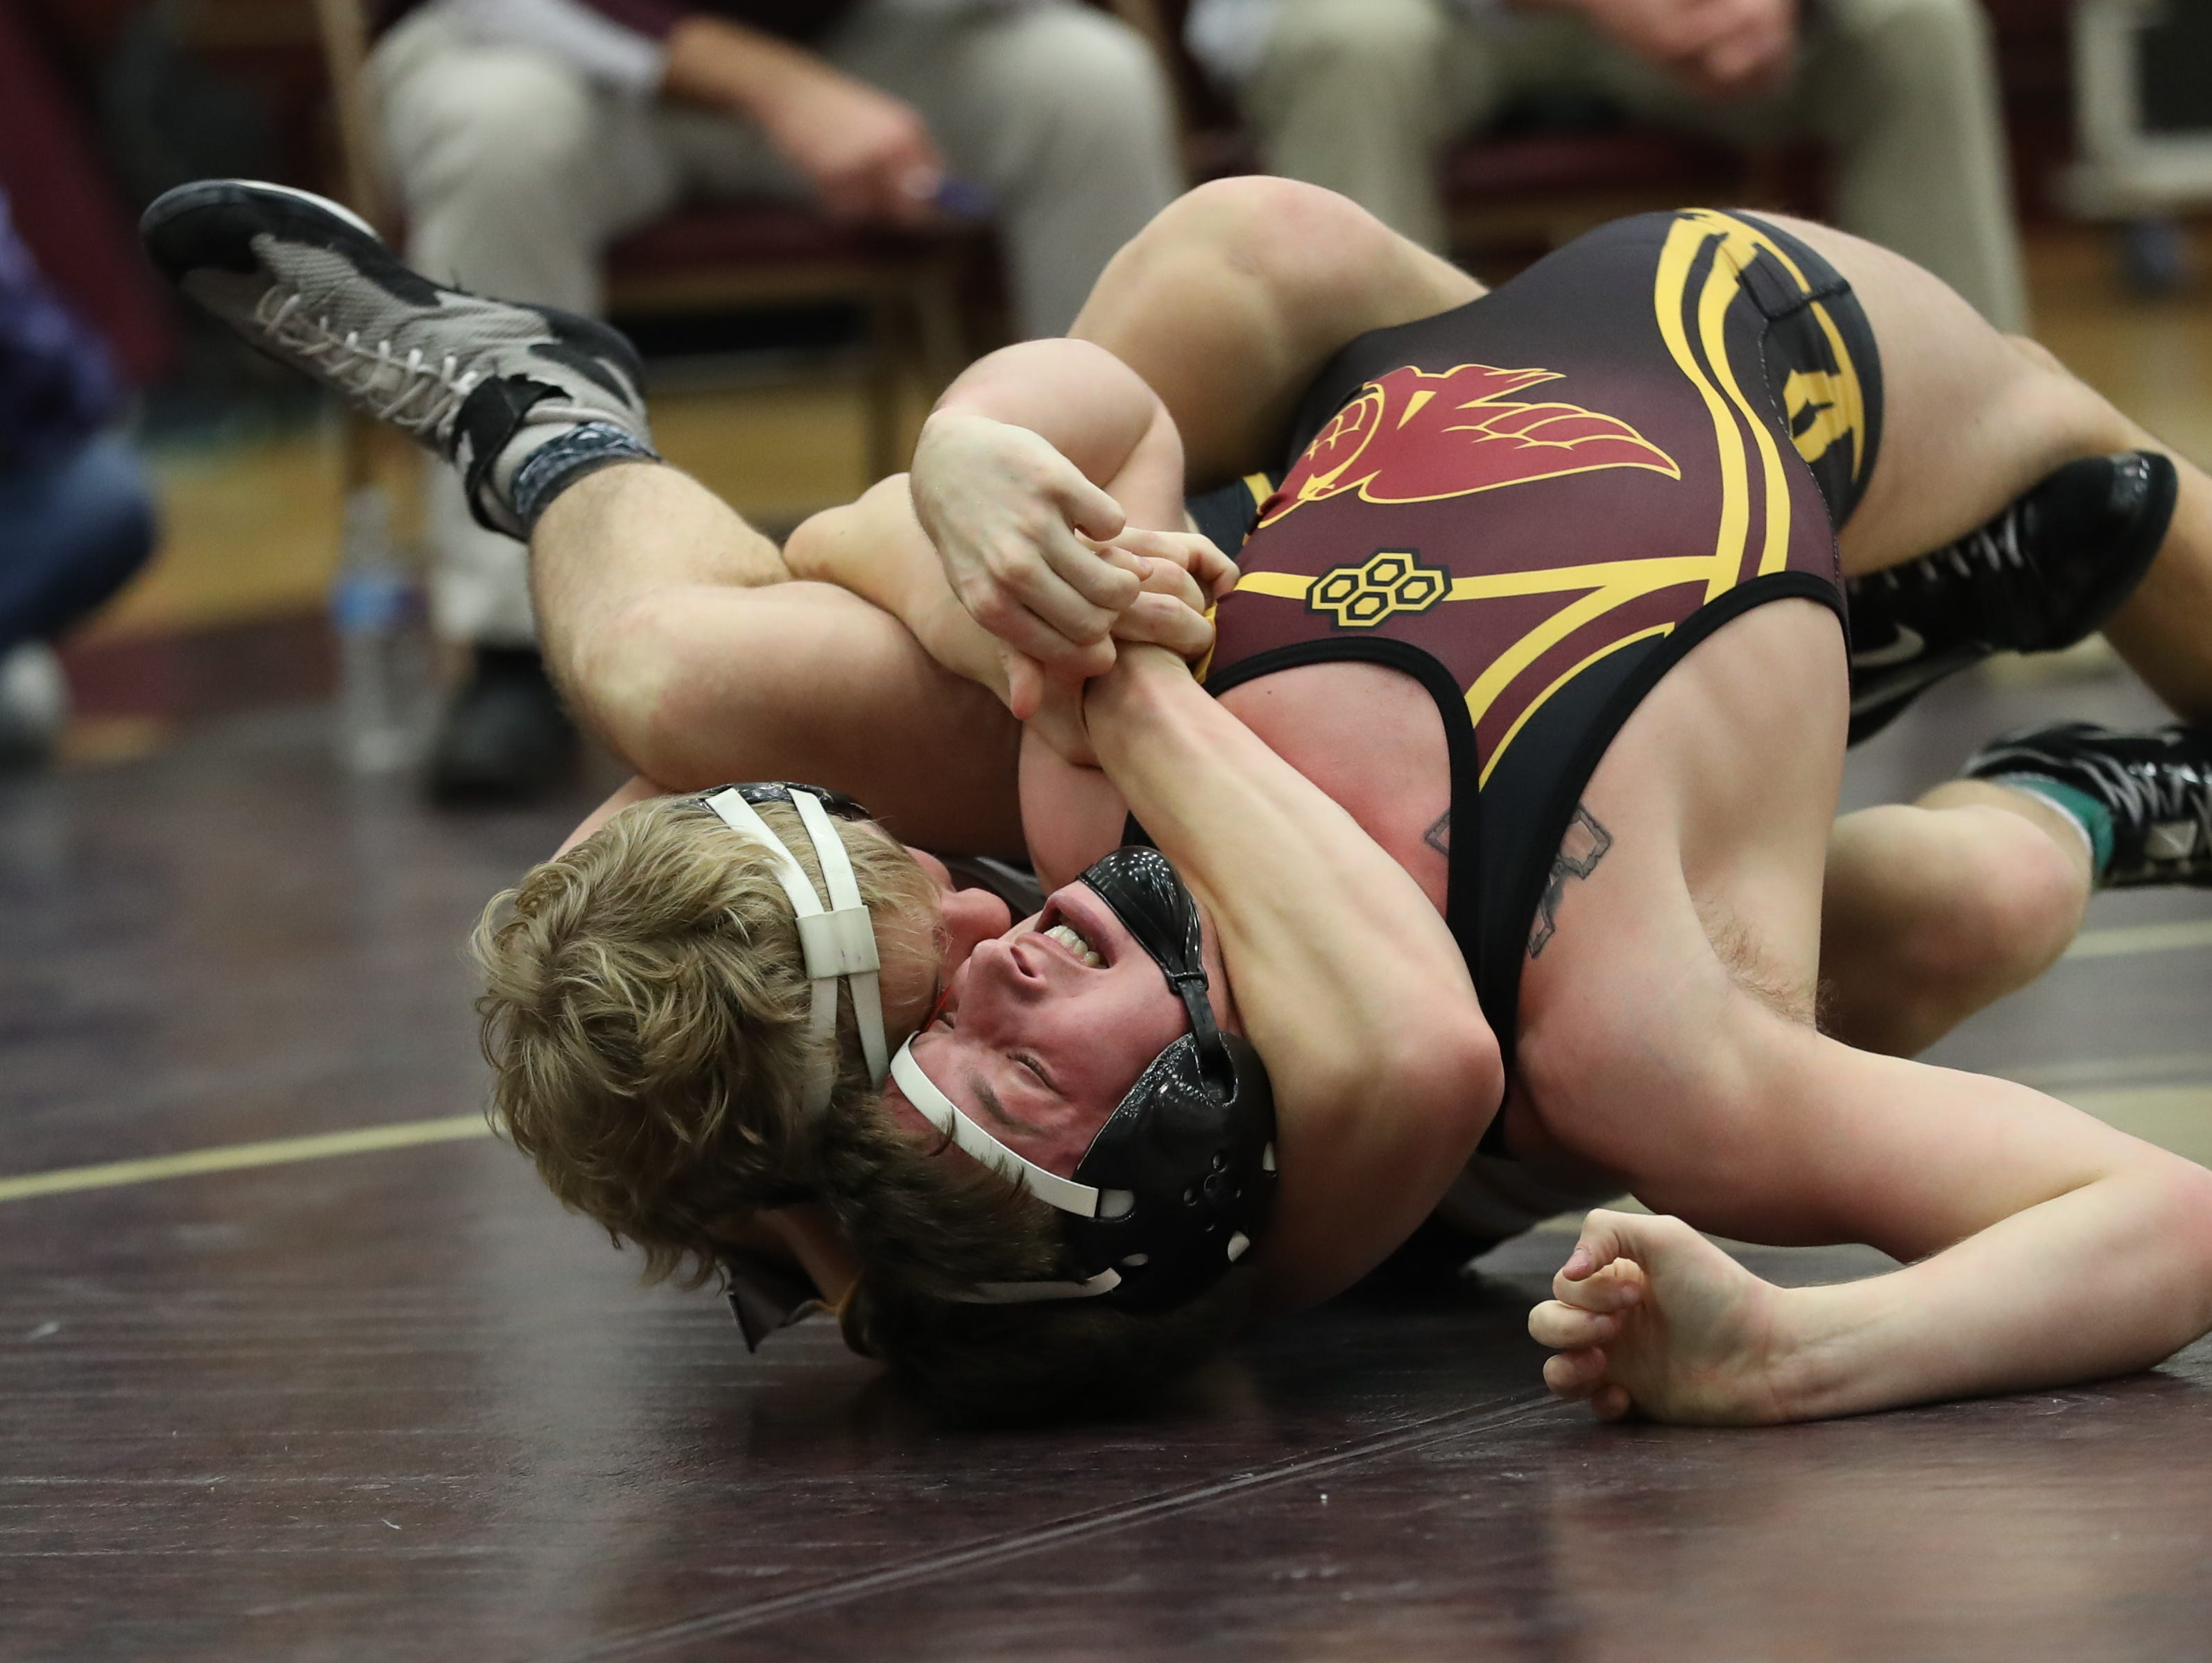 Dec. 4, 2018; Des Moines, IA  USA;  Lance Runyon (Southeast Polk) over Jordan Bales (Ankeny) (Fall 1:10) at Des Moines Lincoln High School. The Rams beat the Hawks 54-14.